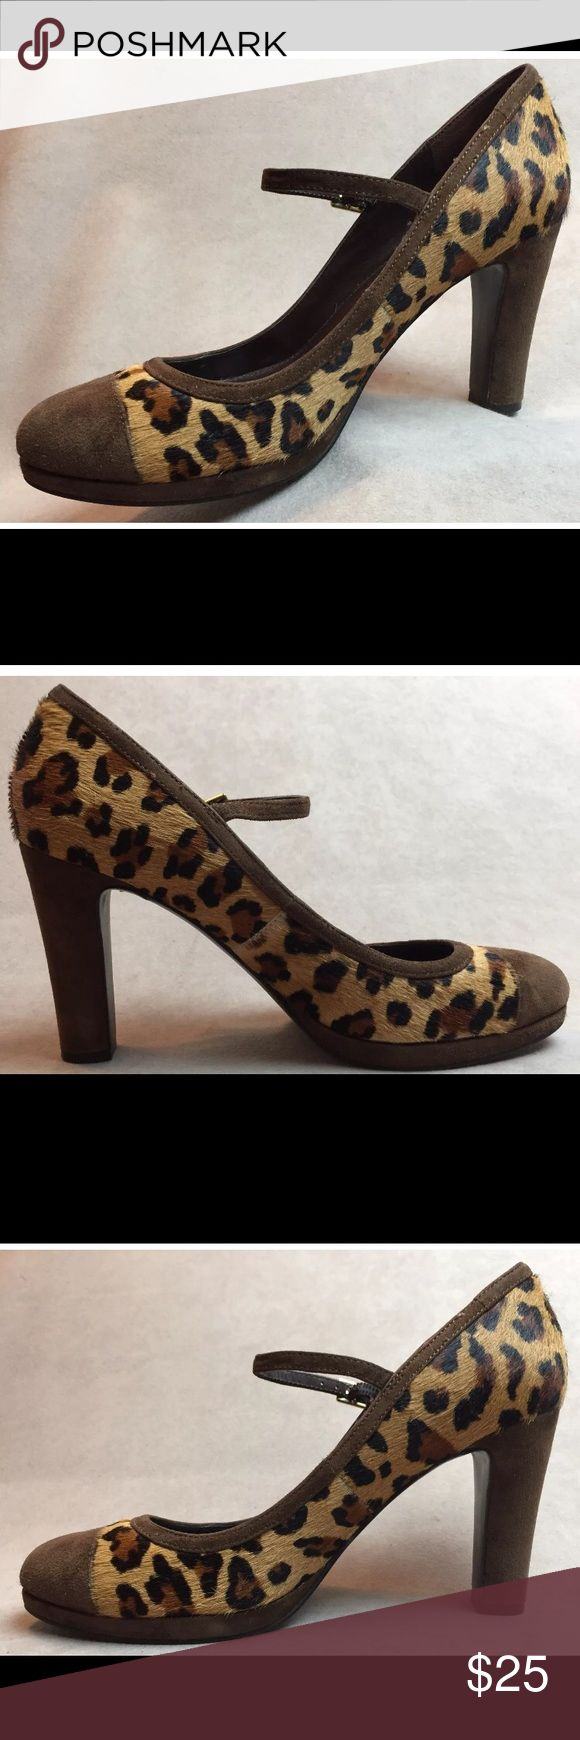 Women's Ralf Lauren Leopard Animal Print Size 8 Women's Ralf Lauren Leopard Animal Print Size 8 Excellent Condition!!   (Please 👀 look at the pictures closely for a visual inspection of the overall condition of the item before you make the decision to purchase ..Thank you very much)!!    Note:  Colors in the pictures may differ slightly due to lighting and the perception of the camera. Ralph Lauren Shoes Heels